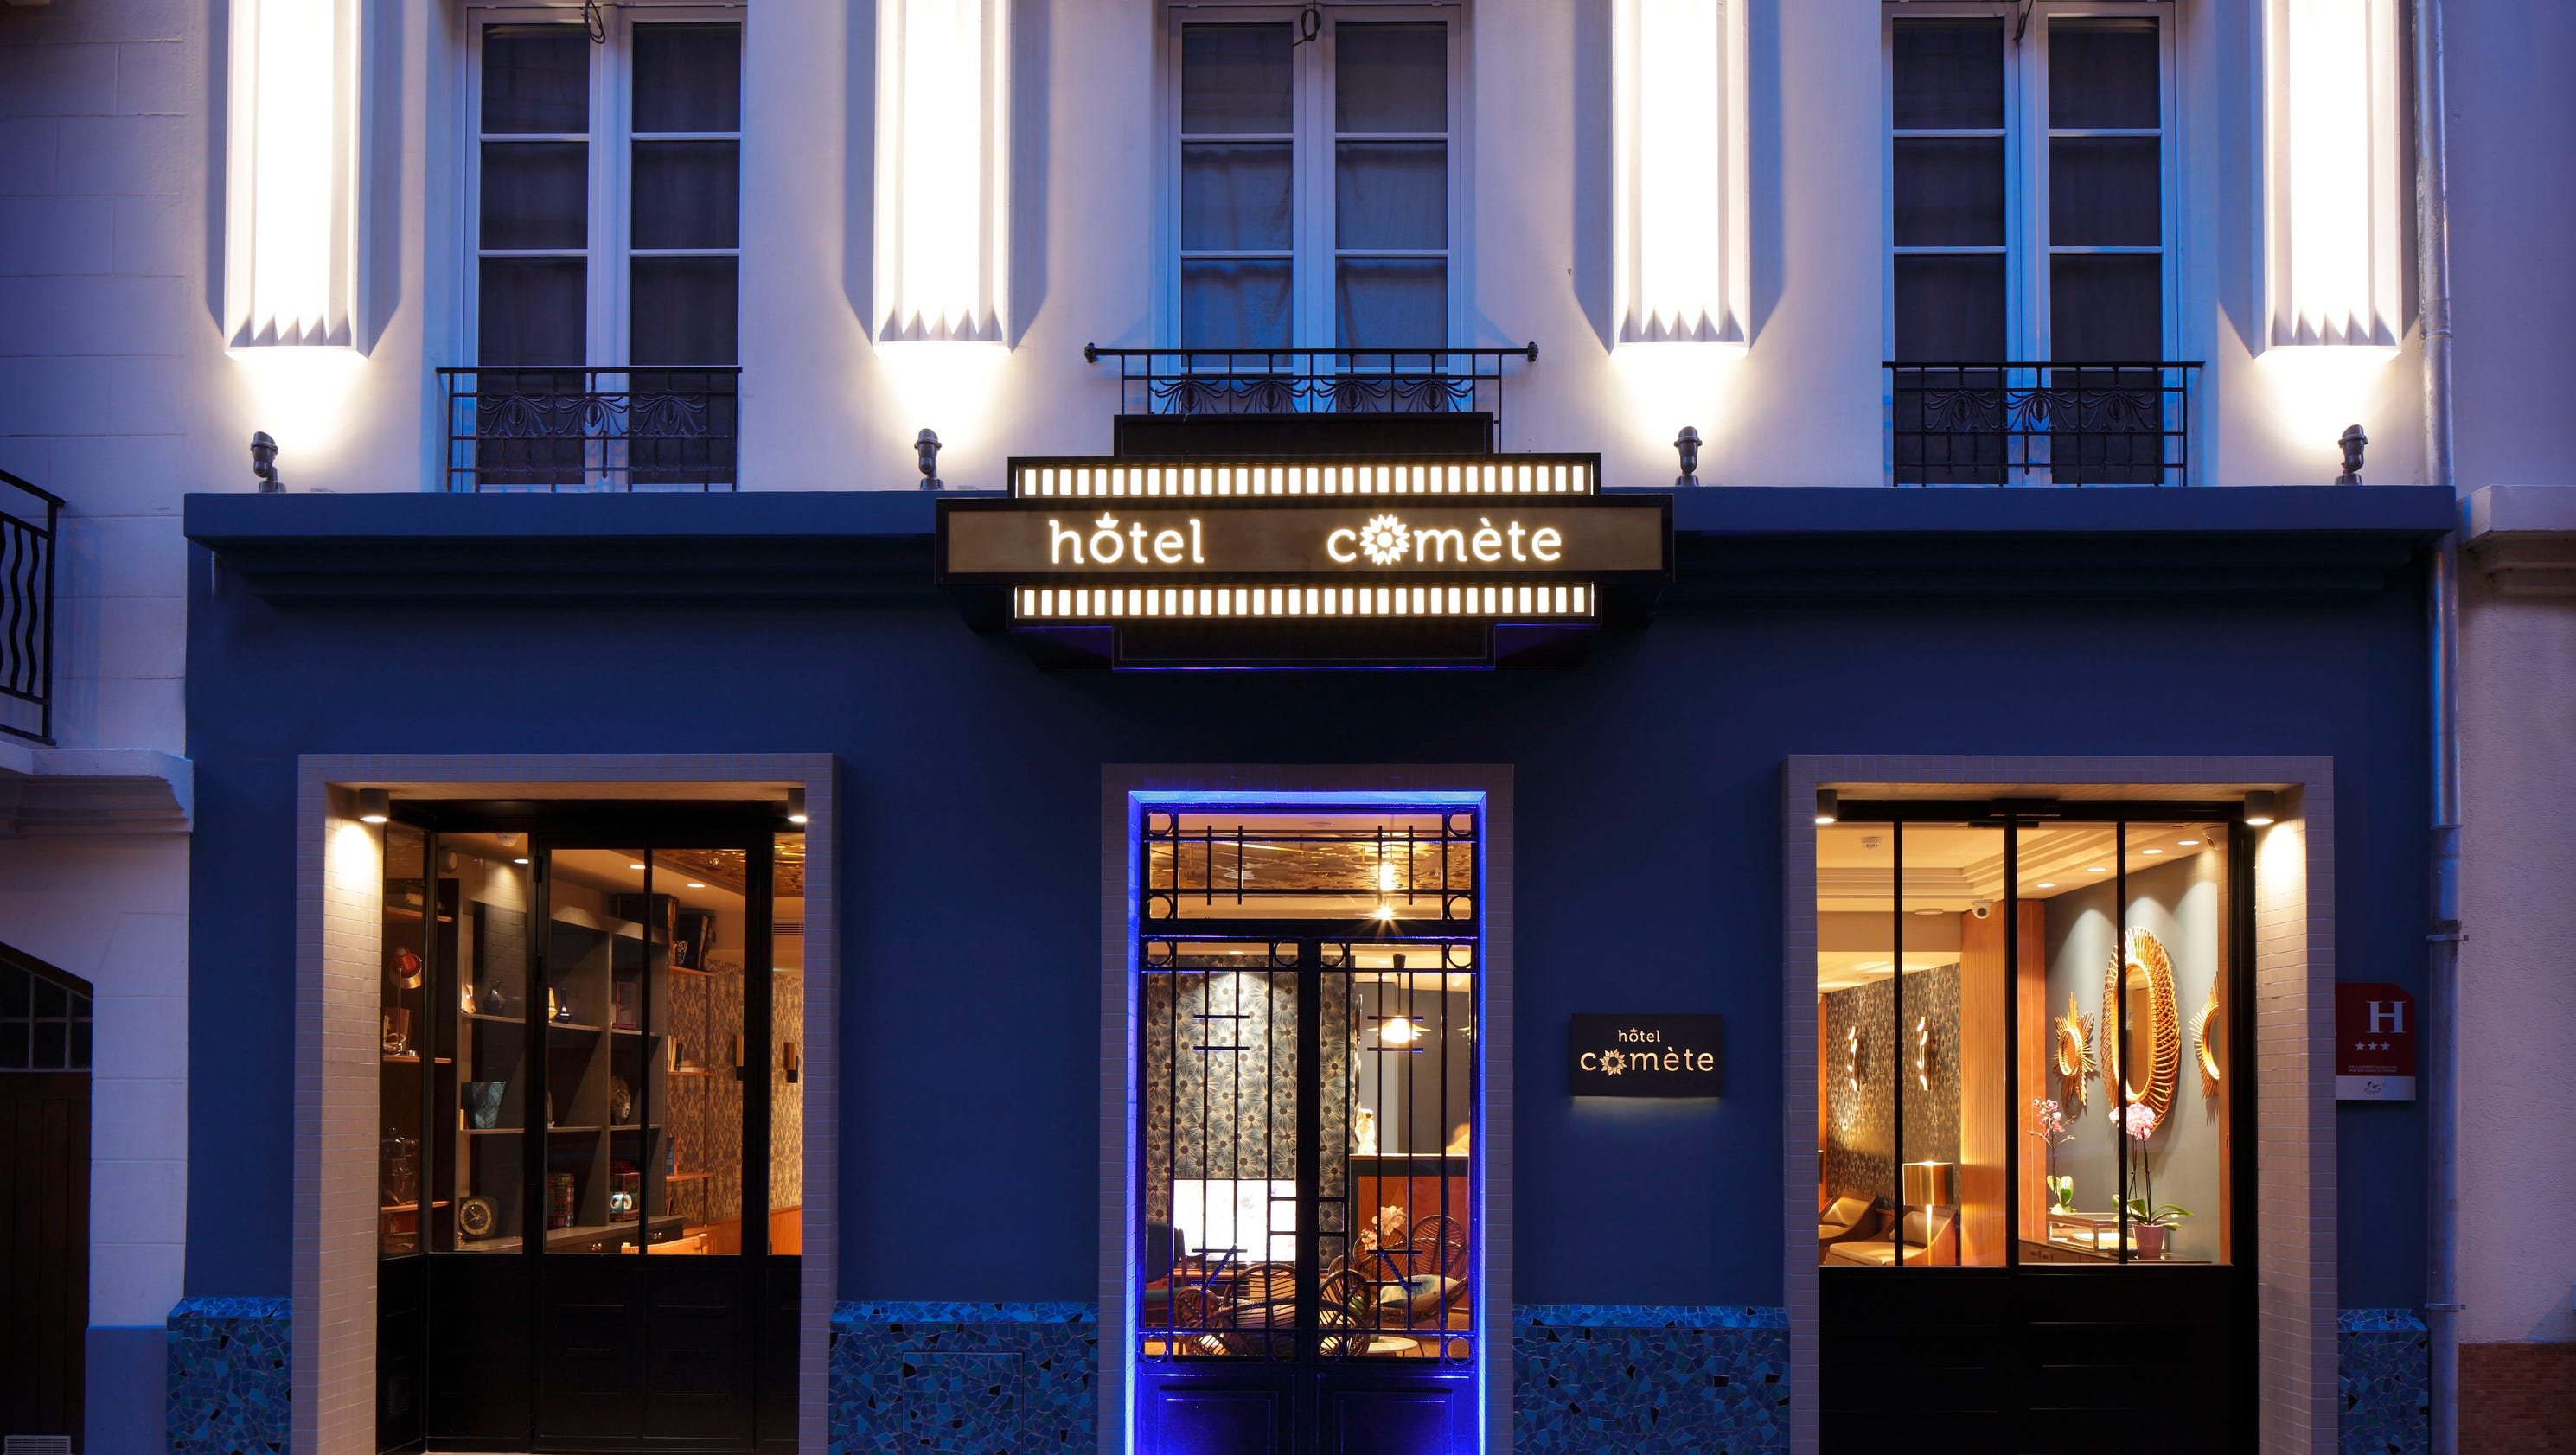 The 20 best reviewed hotels in paris according to for Top 20 hotels